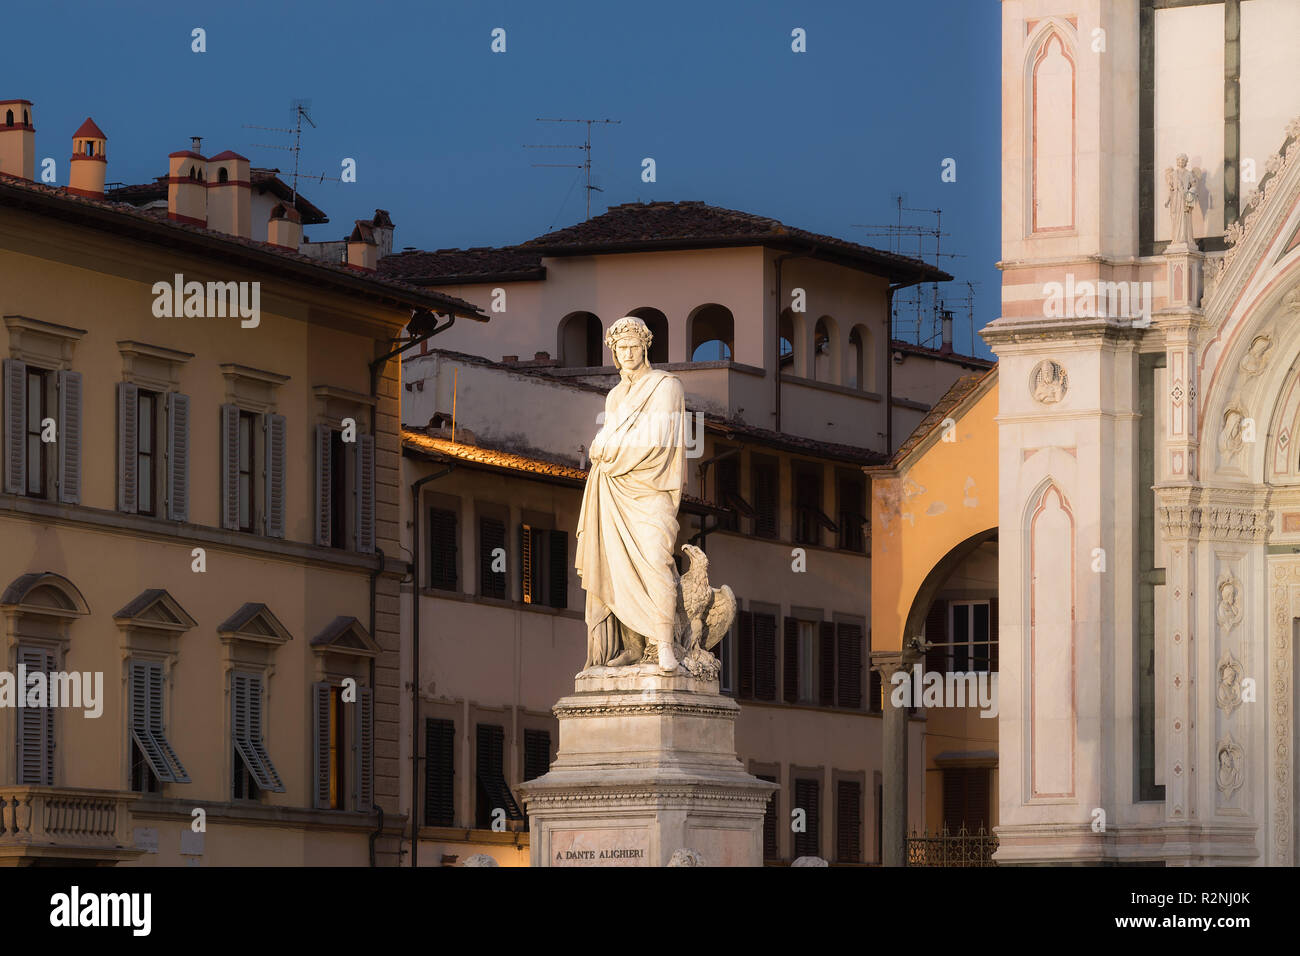 Florence, Piazza di Santa Croce, Dante Monument, blue hour - Stock Image